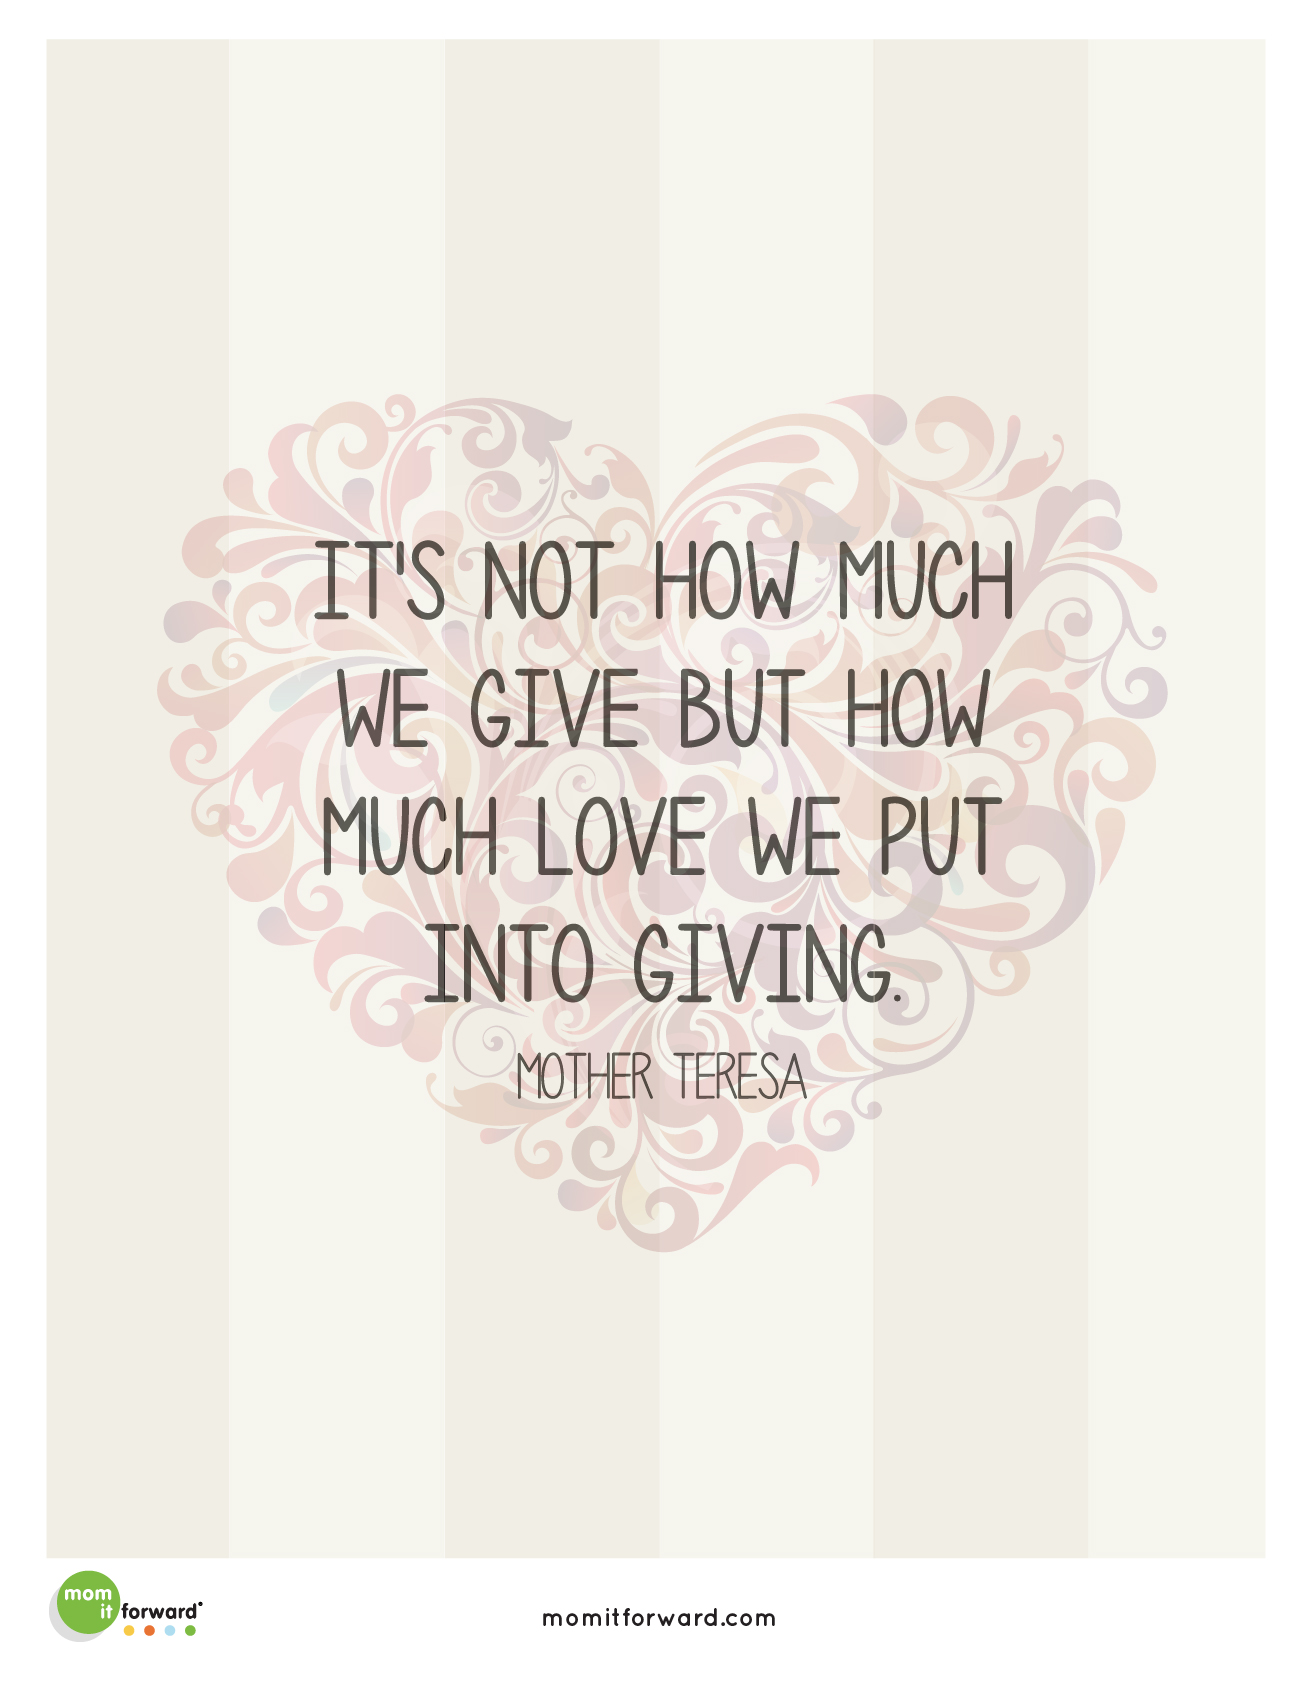 Quotes About Donating Quotes About Giving Charity 92 Quotes